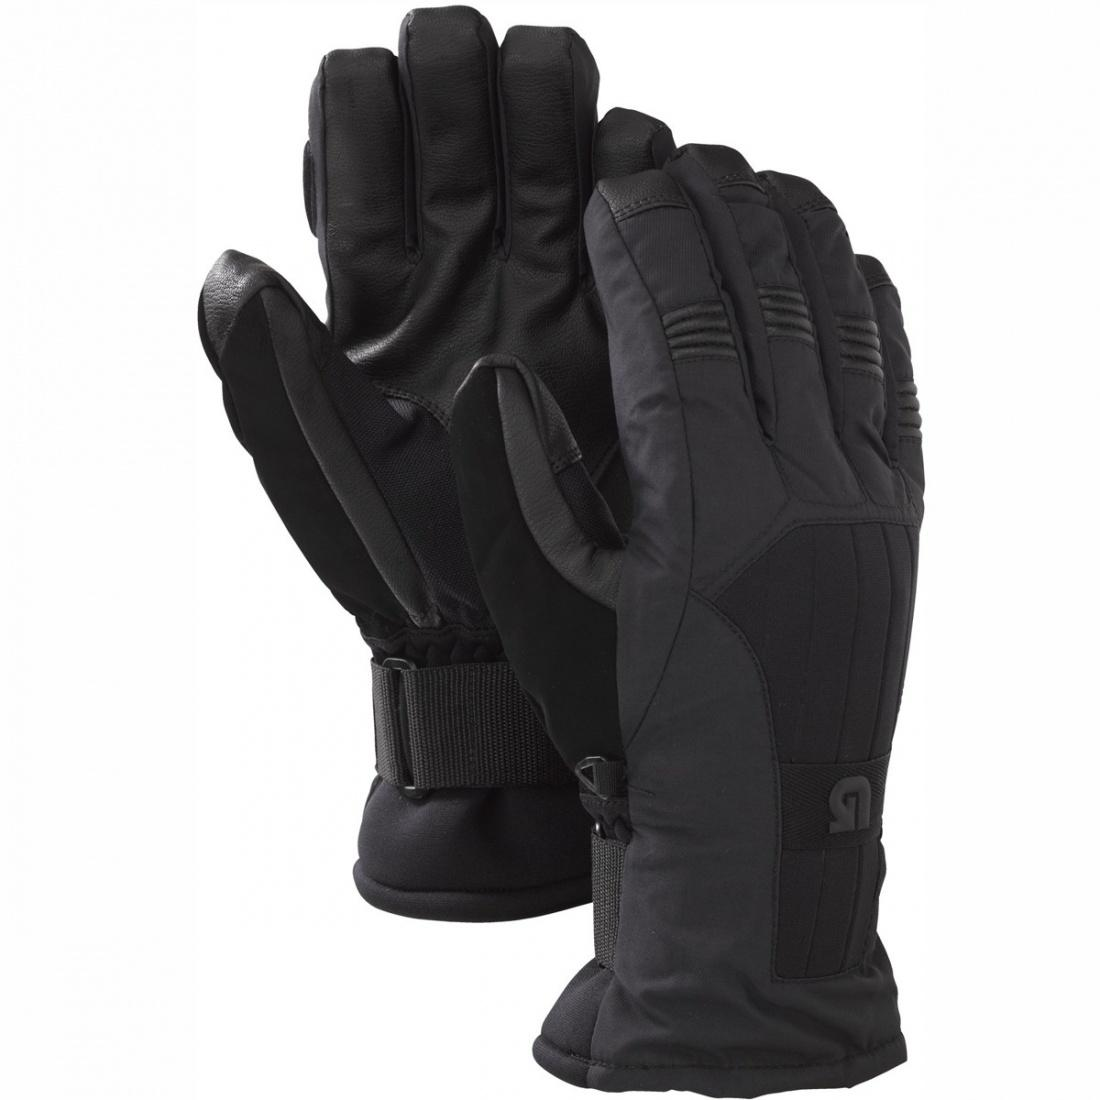 цены на Burton Перчатки Burton Support Glove TRUE BLACK M в интернет-магазинах